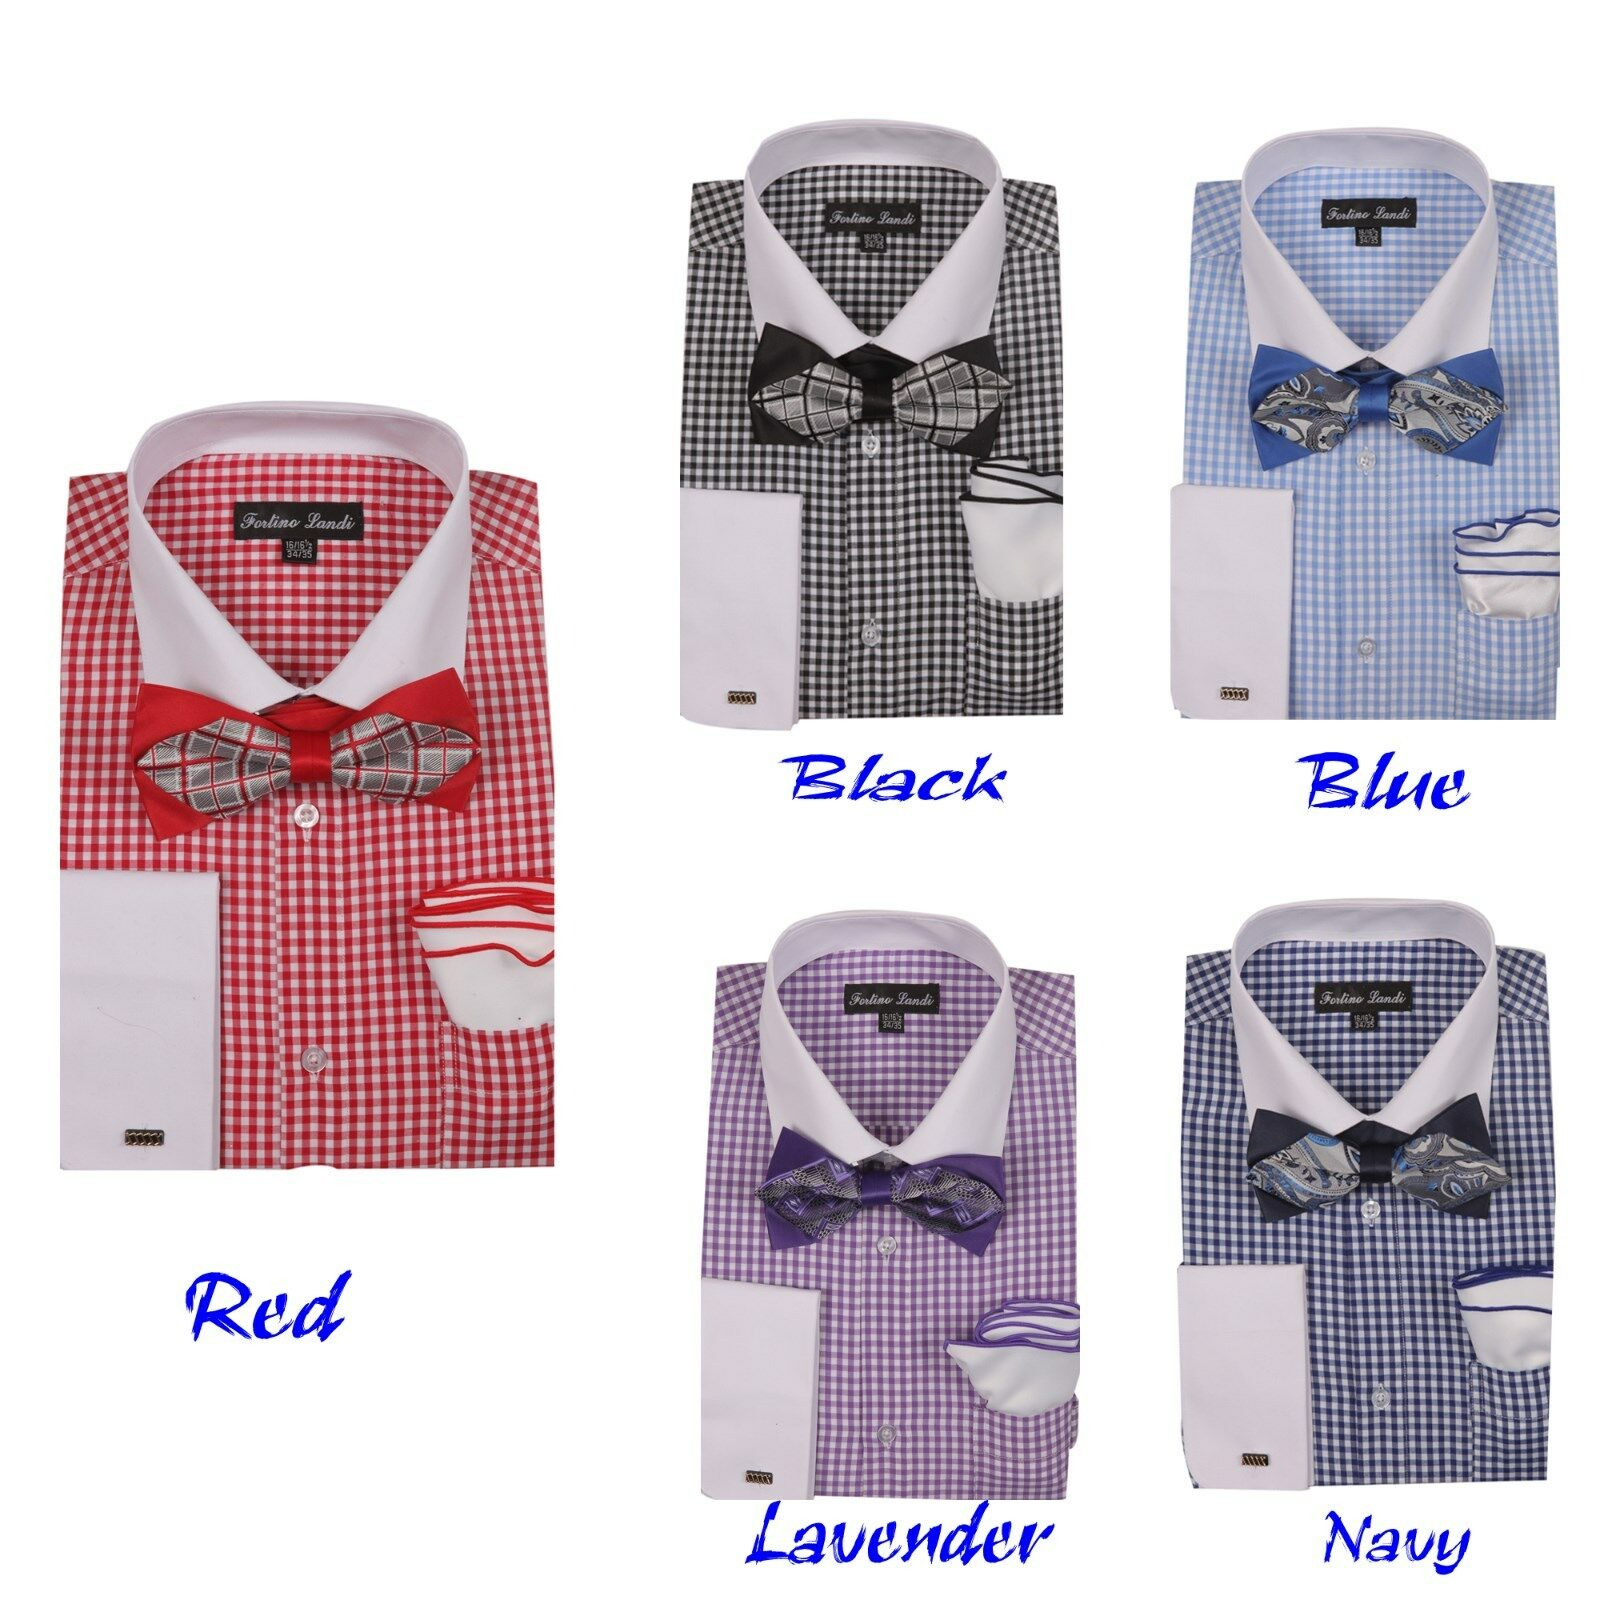 296e0c6b2 Details about Men's Checks Shirt With High Fashion Bow tie and Handkerchief  French Cuff FL628